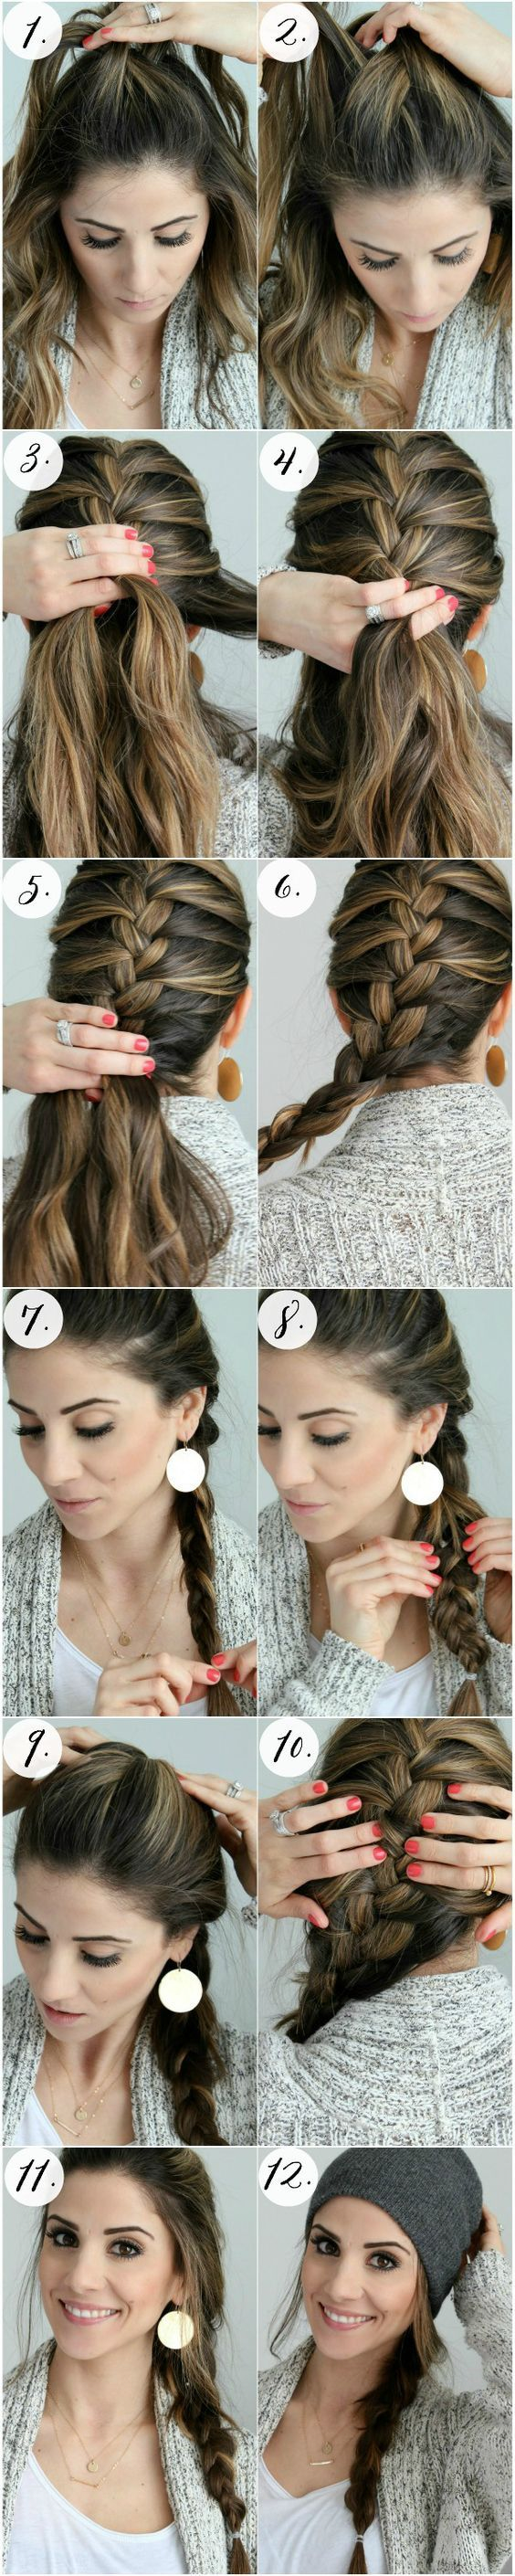 Pretty Braided Crown Hairstyle Tutorials and Ideas / http://www.himisspuff.com/easy-diy-braided-hairstyles-tutorials/48/